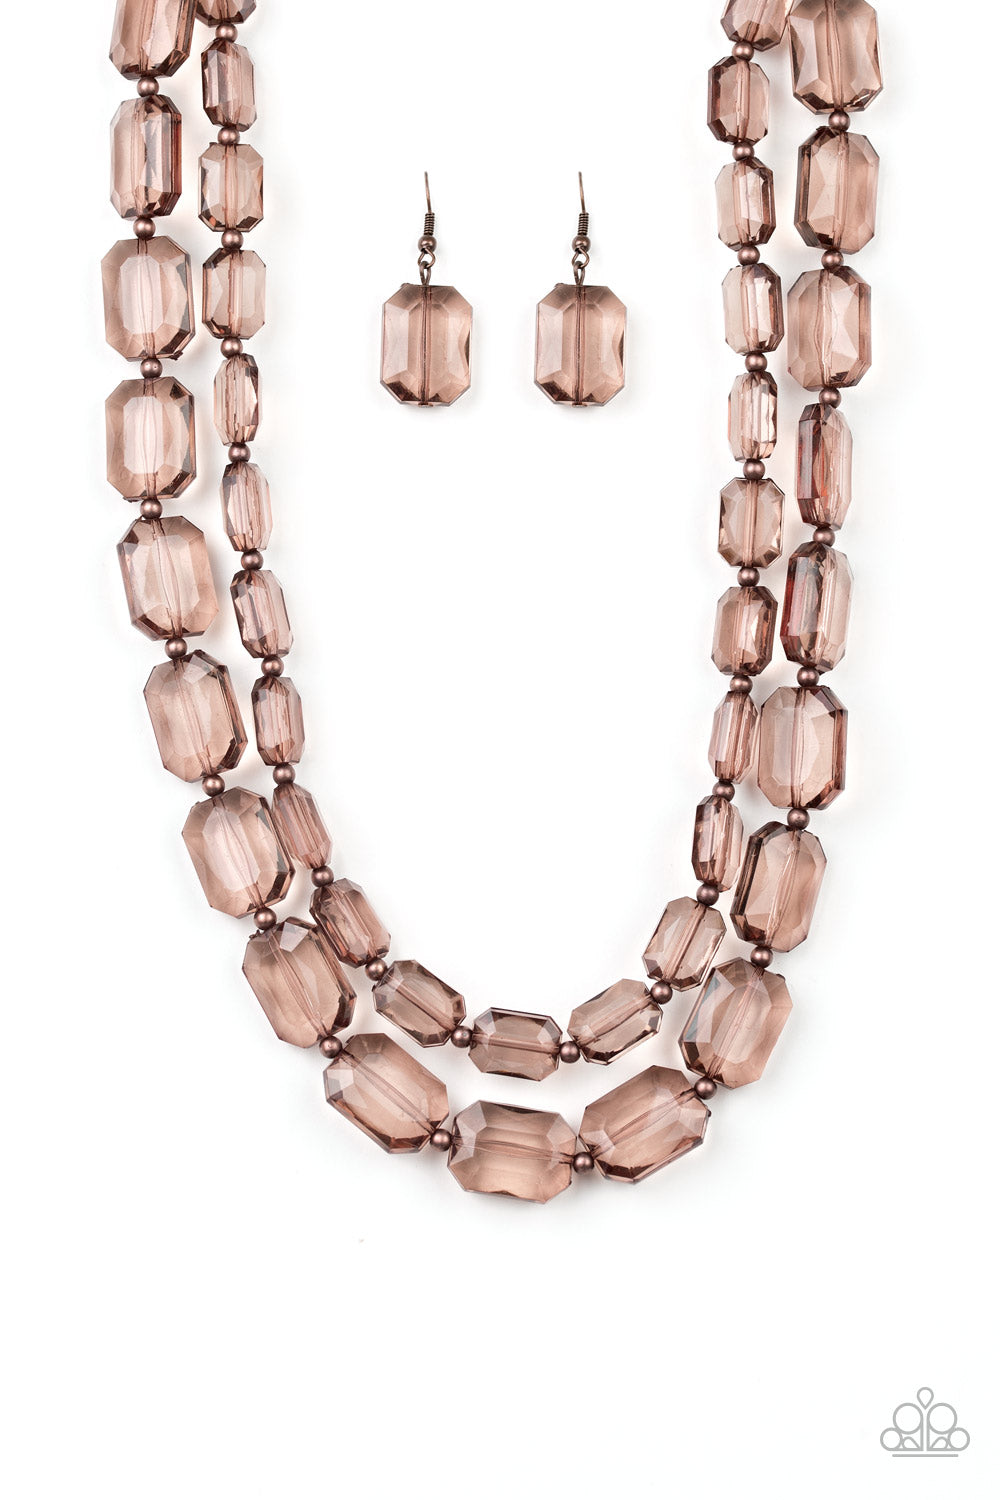 Ice Bank - Copper Necklace - The Paparazzi Fox